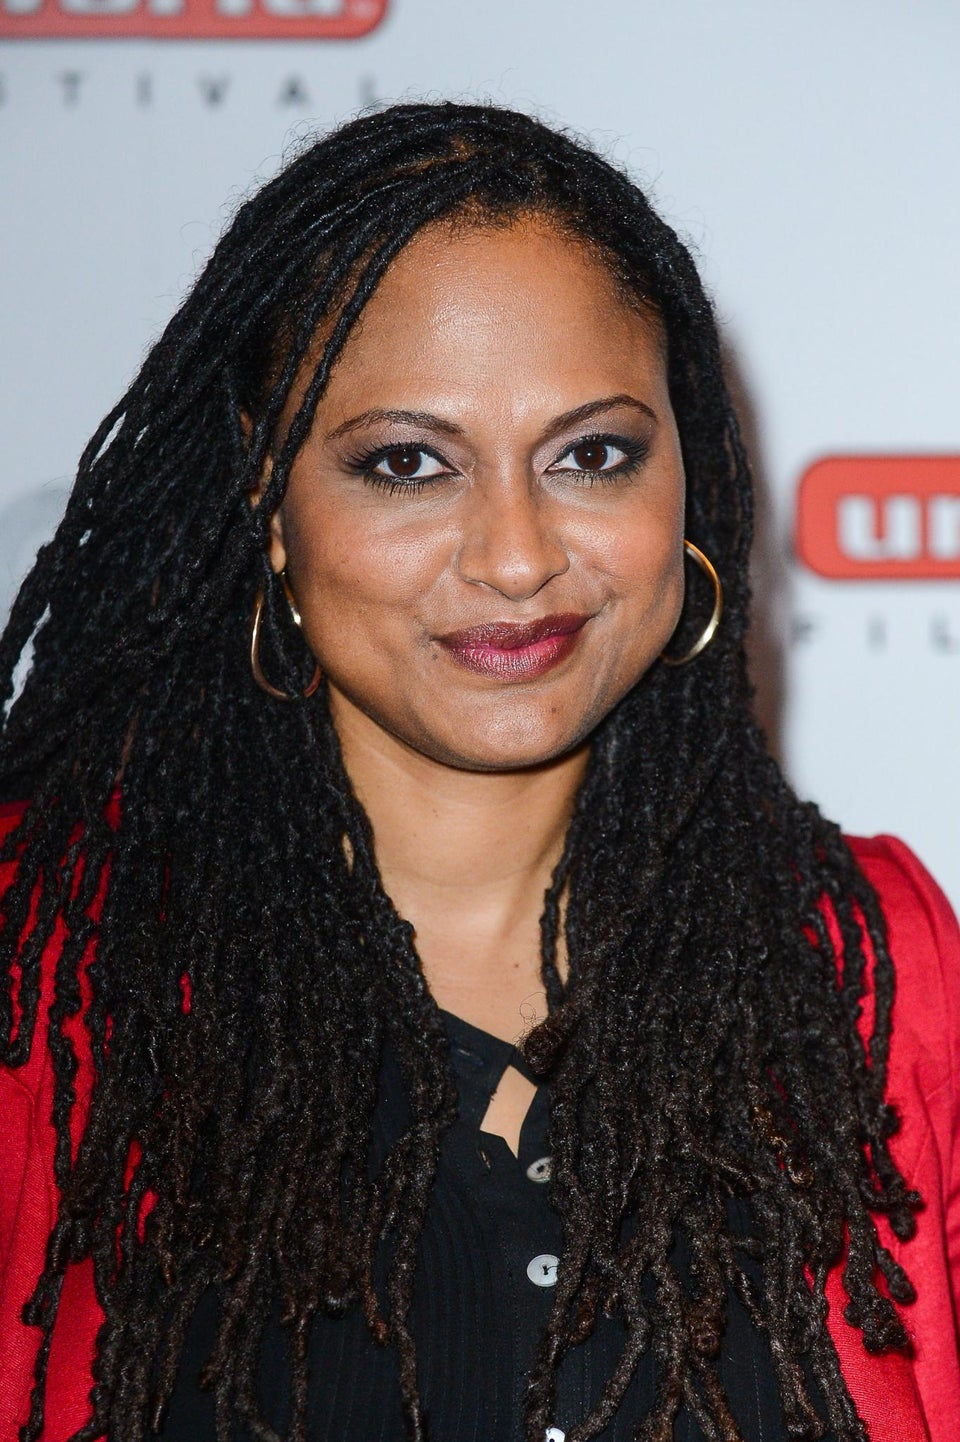 EXCLUSIVE: Ava DuVernay on 'Venus Vs.', Her New Doc on Venus Williams' Fight for Fair Pay in Tennis